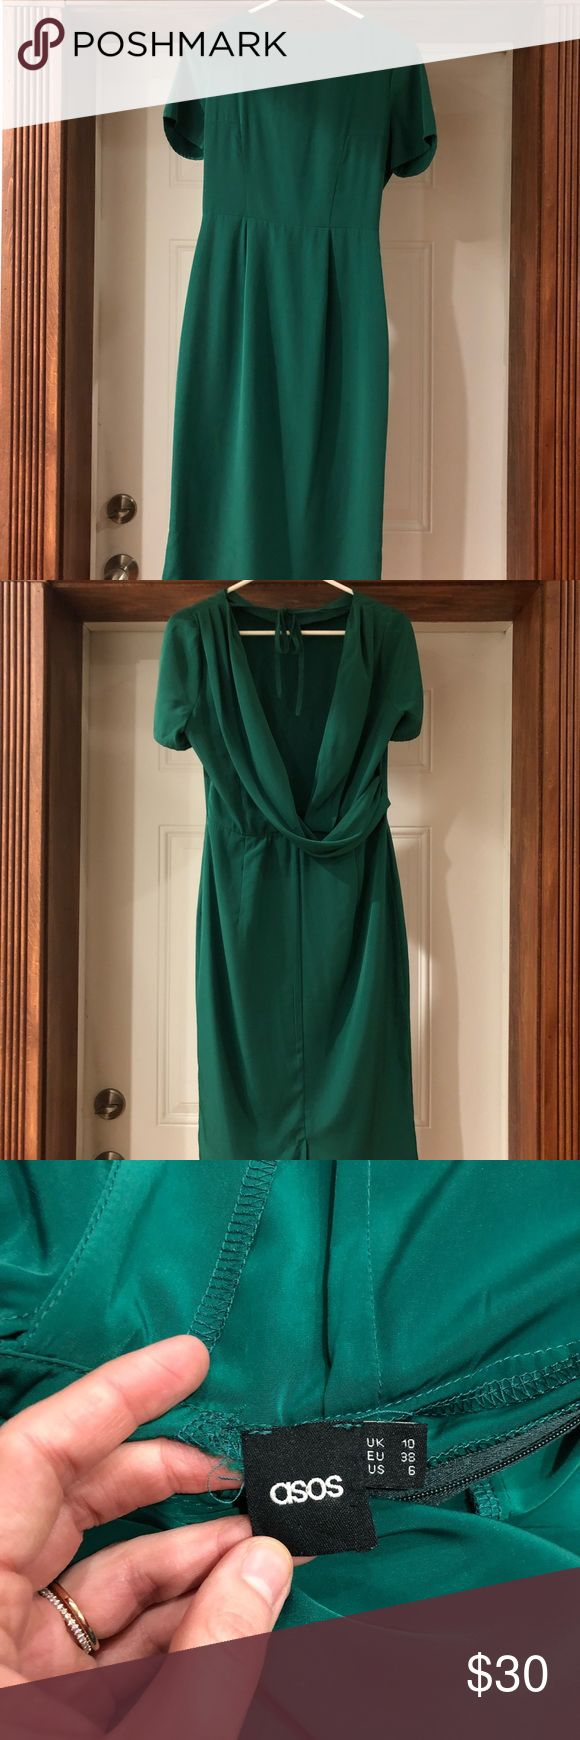 Green Asos Cocktail Dress Beautiful emerald green Asos cocktail dress. Open back with extra fabric that lays beautifully. Tie at the neck. Mid-length. Great for parties, weddings, and holiday gatherings. ASOS Dresses Midi